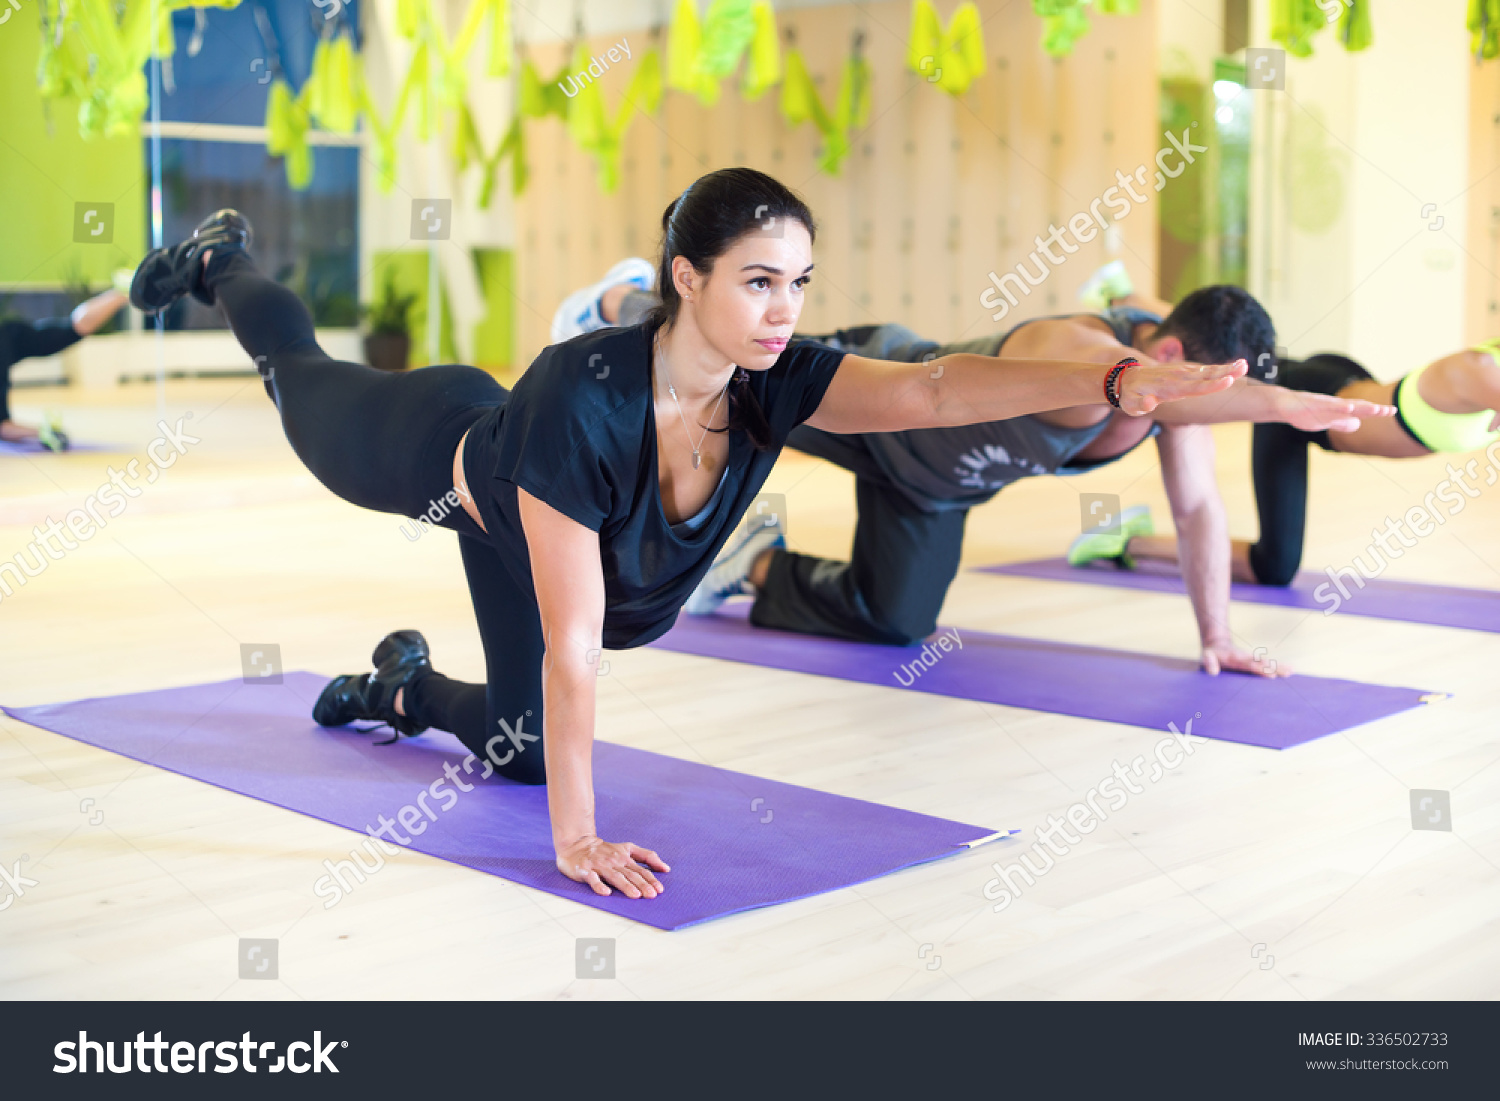 Group women stretching traning exercising in gym practicing yoga pilates